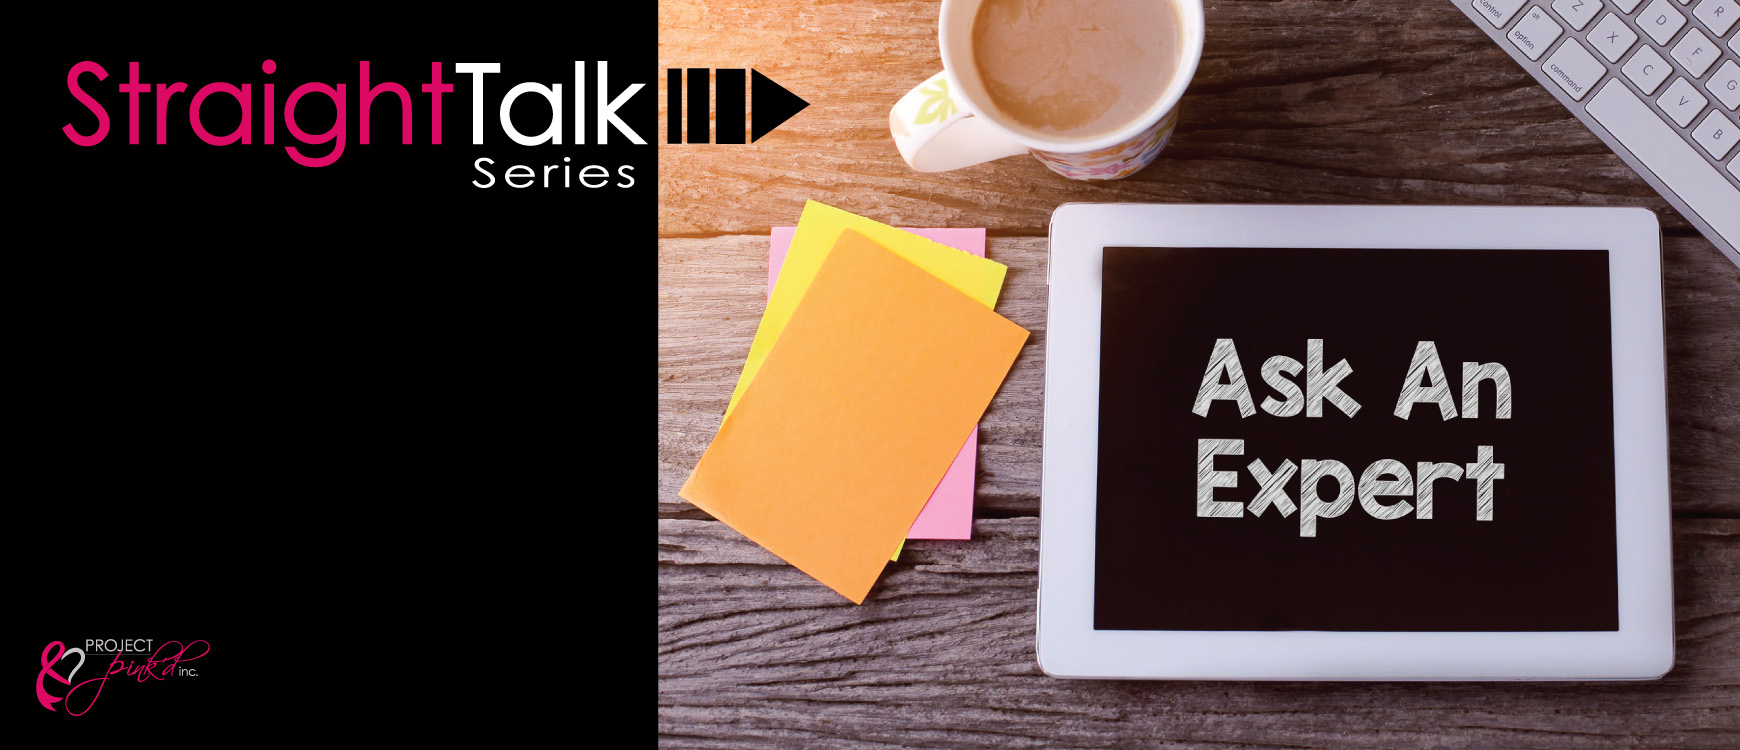 Project Pink'd to Launch New Live Webcast Series, Straight Talk: Ask An Expert